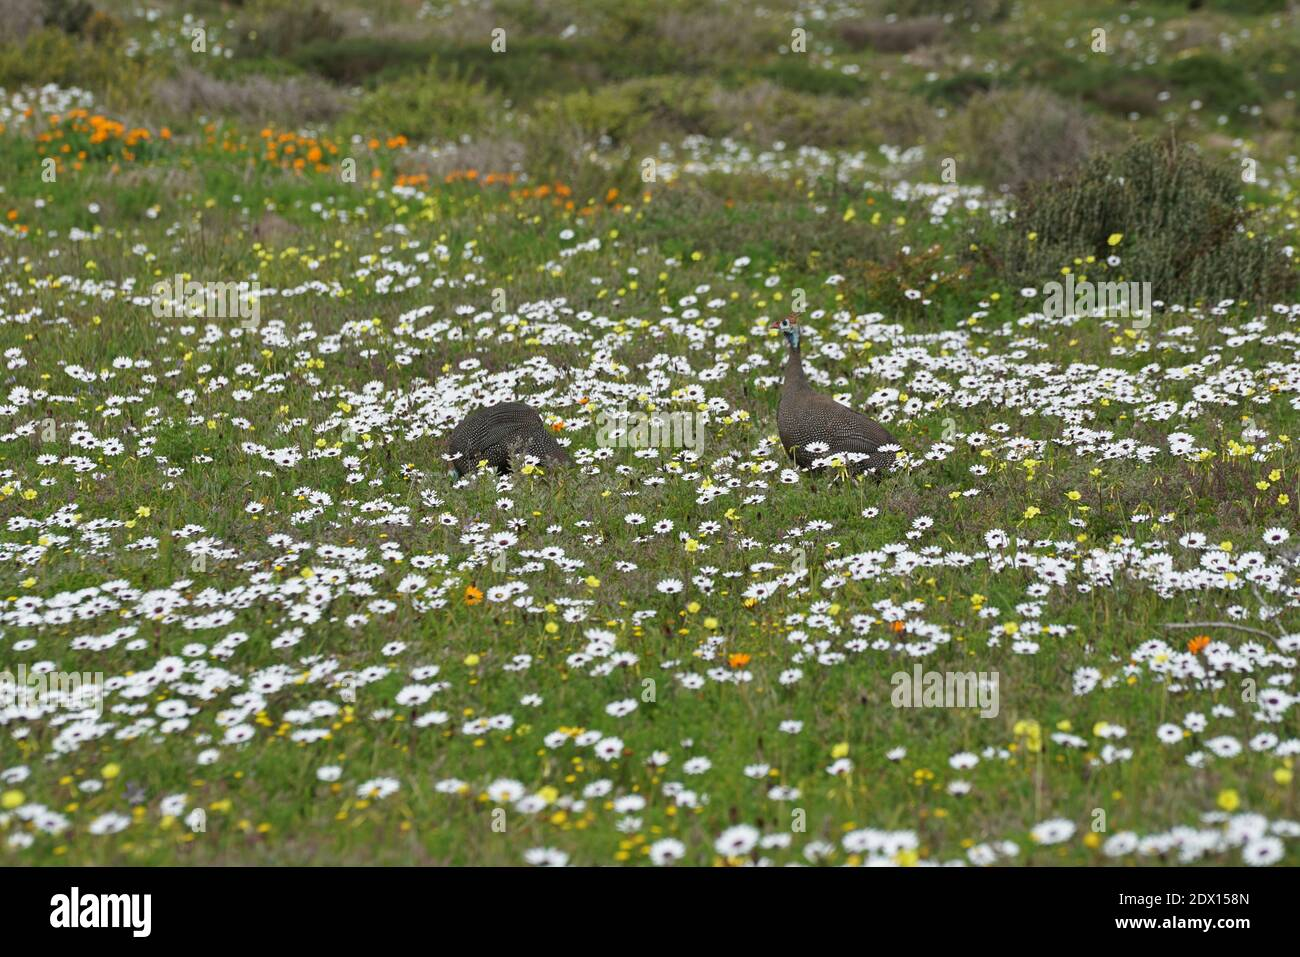 View Of White Flowering Plants On Field Stock Photo